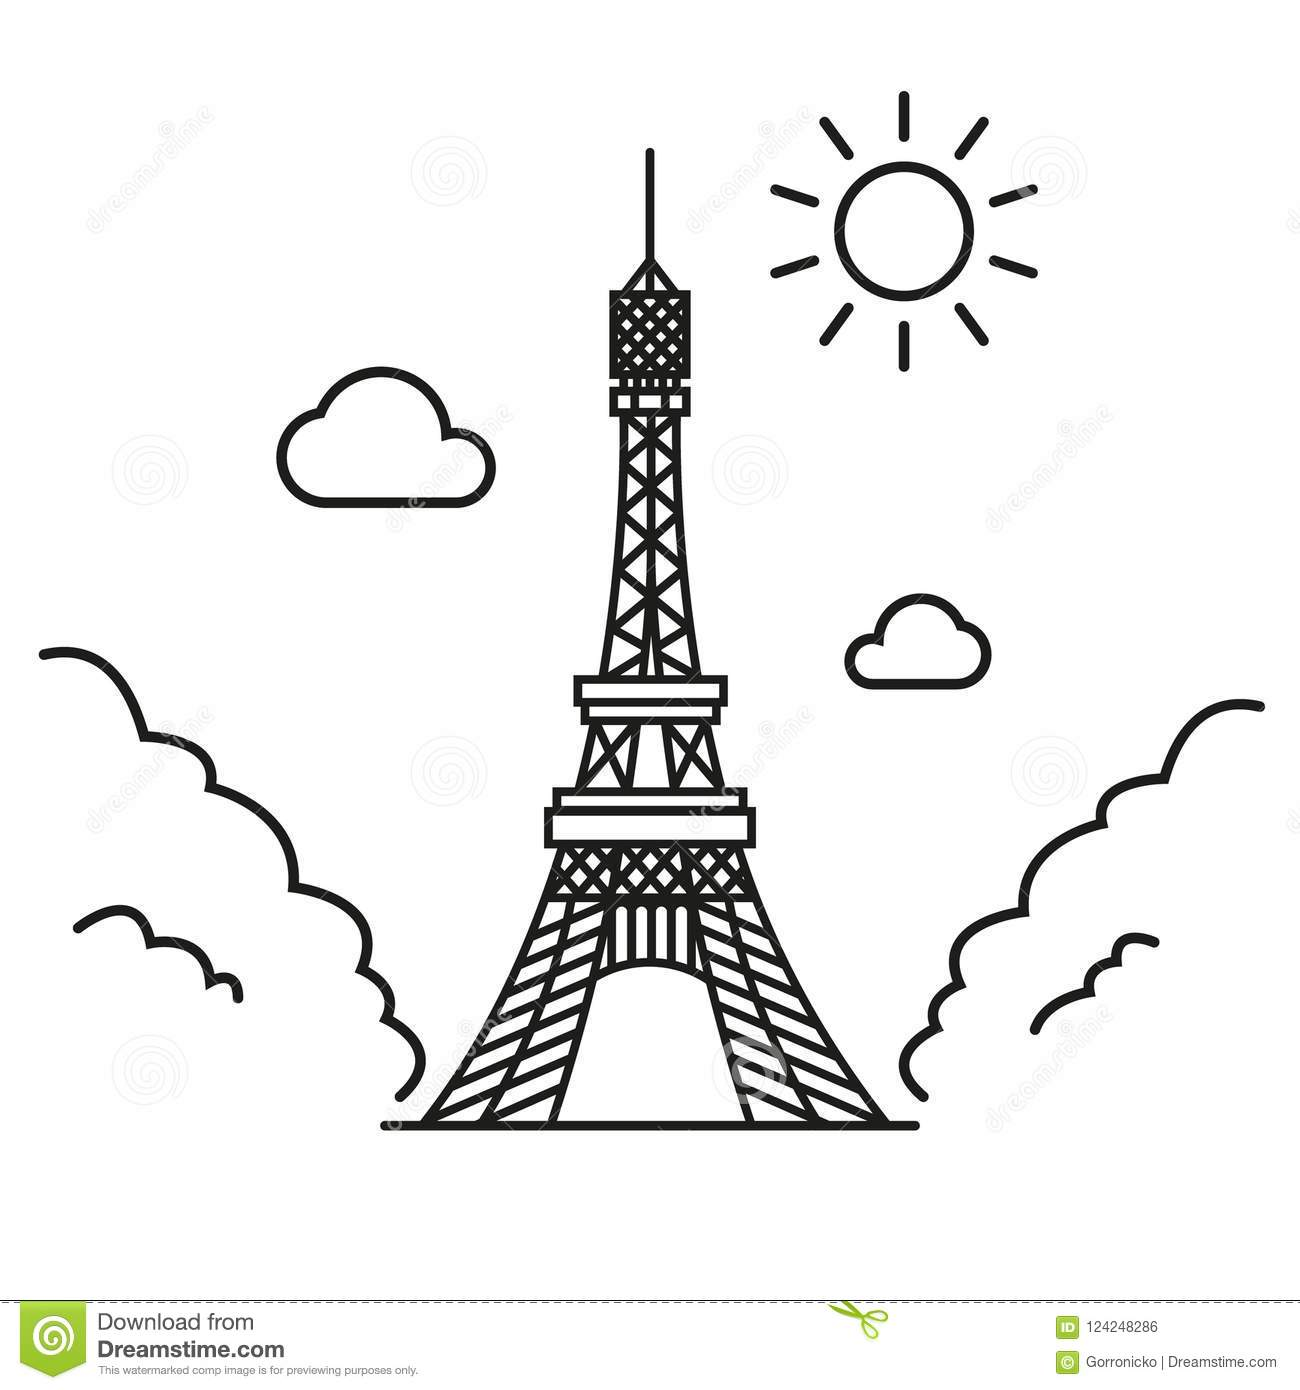 Simple Line Art Vector Illustration Of The Eiffel Tower Stock.